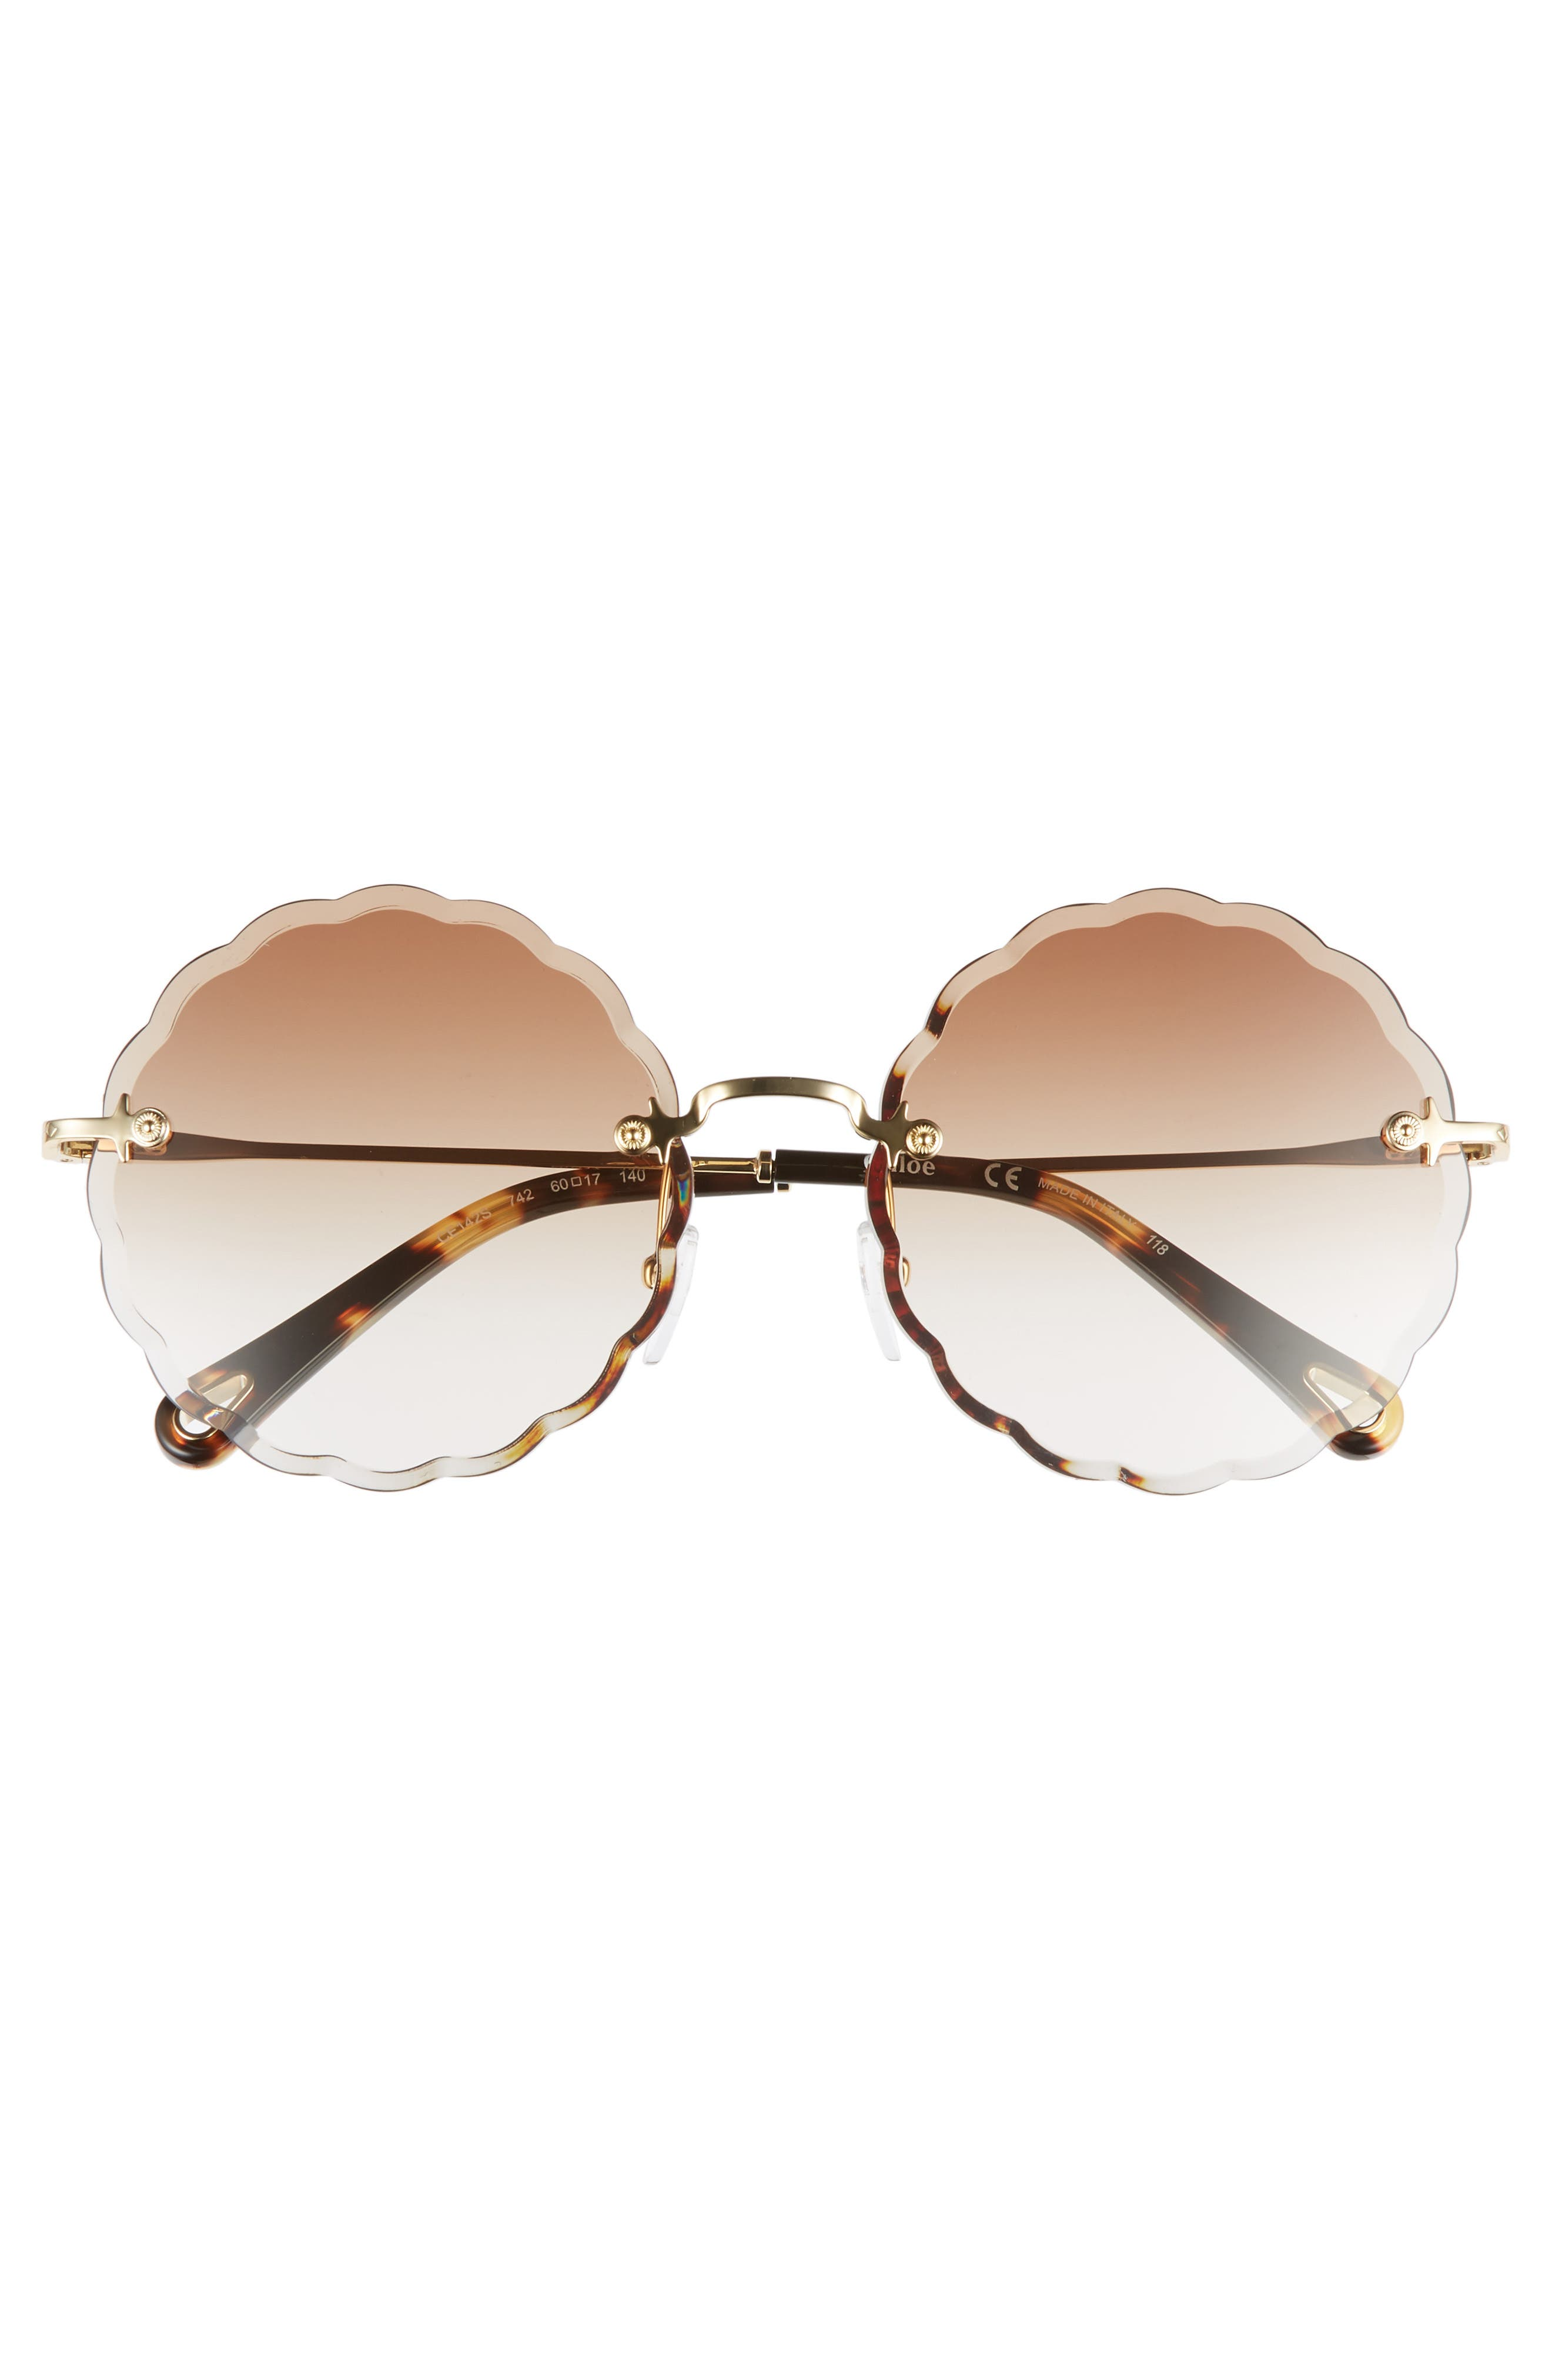 Rosie 60mm Scalloped Rimless Sunglasses,                             Alternate thumbnail 3, color,                             GOLD/ GRADIENT BROWN